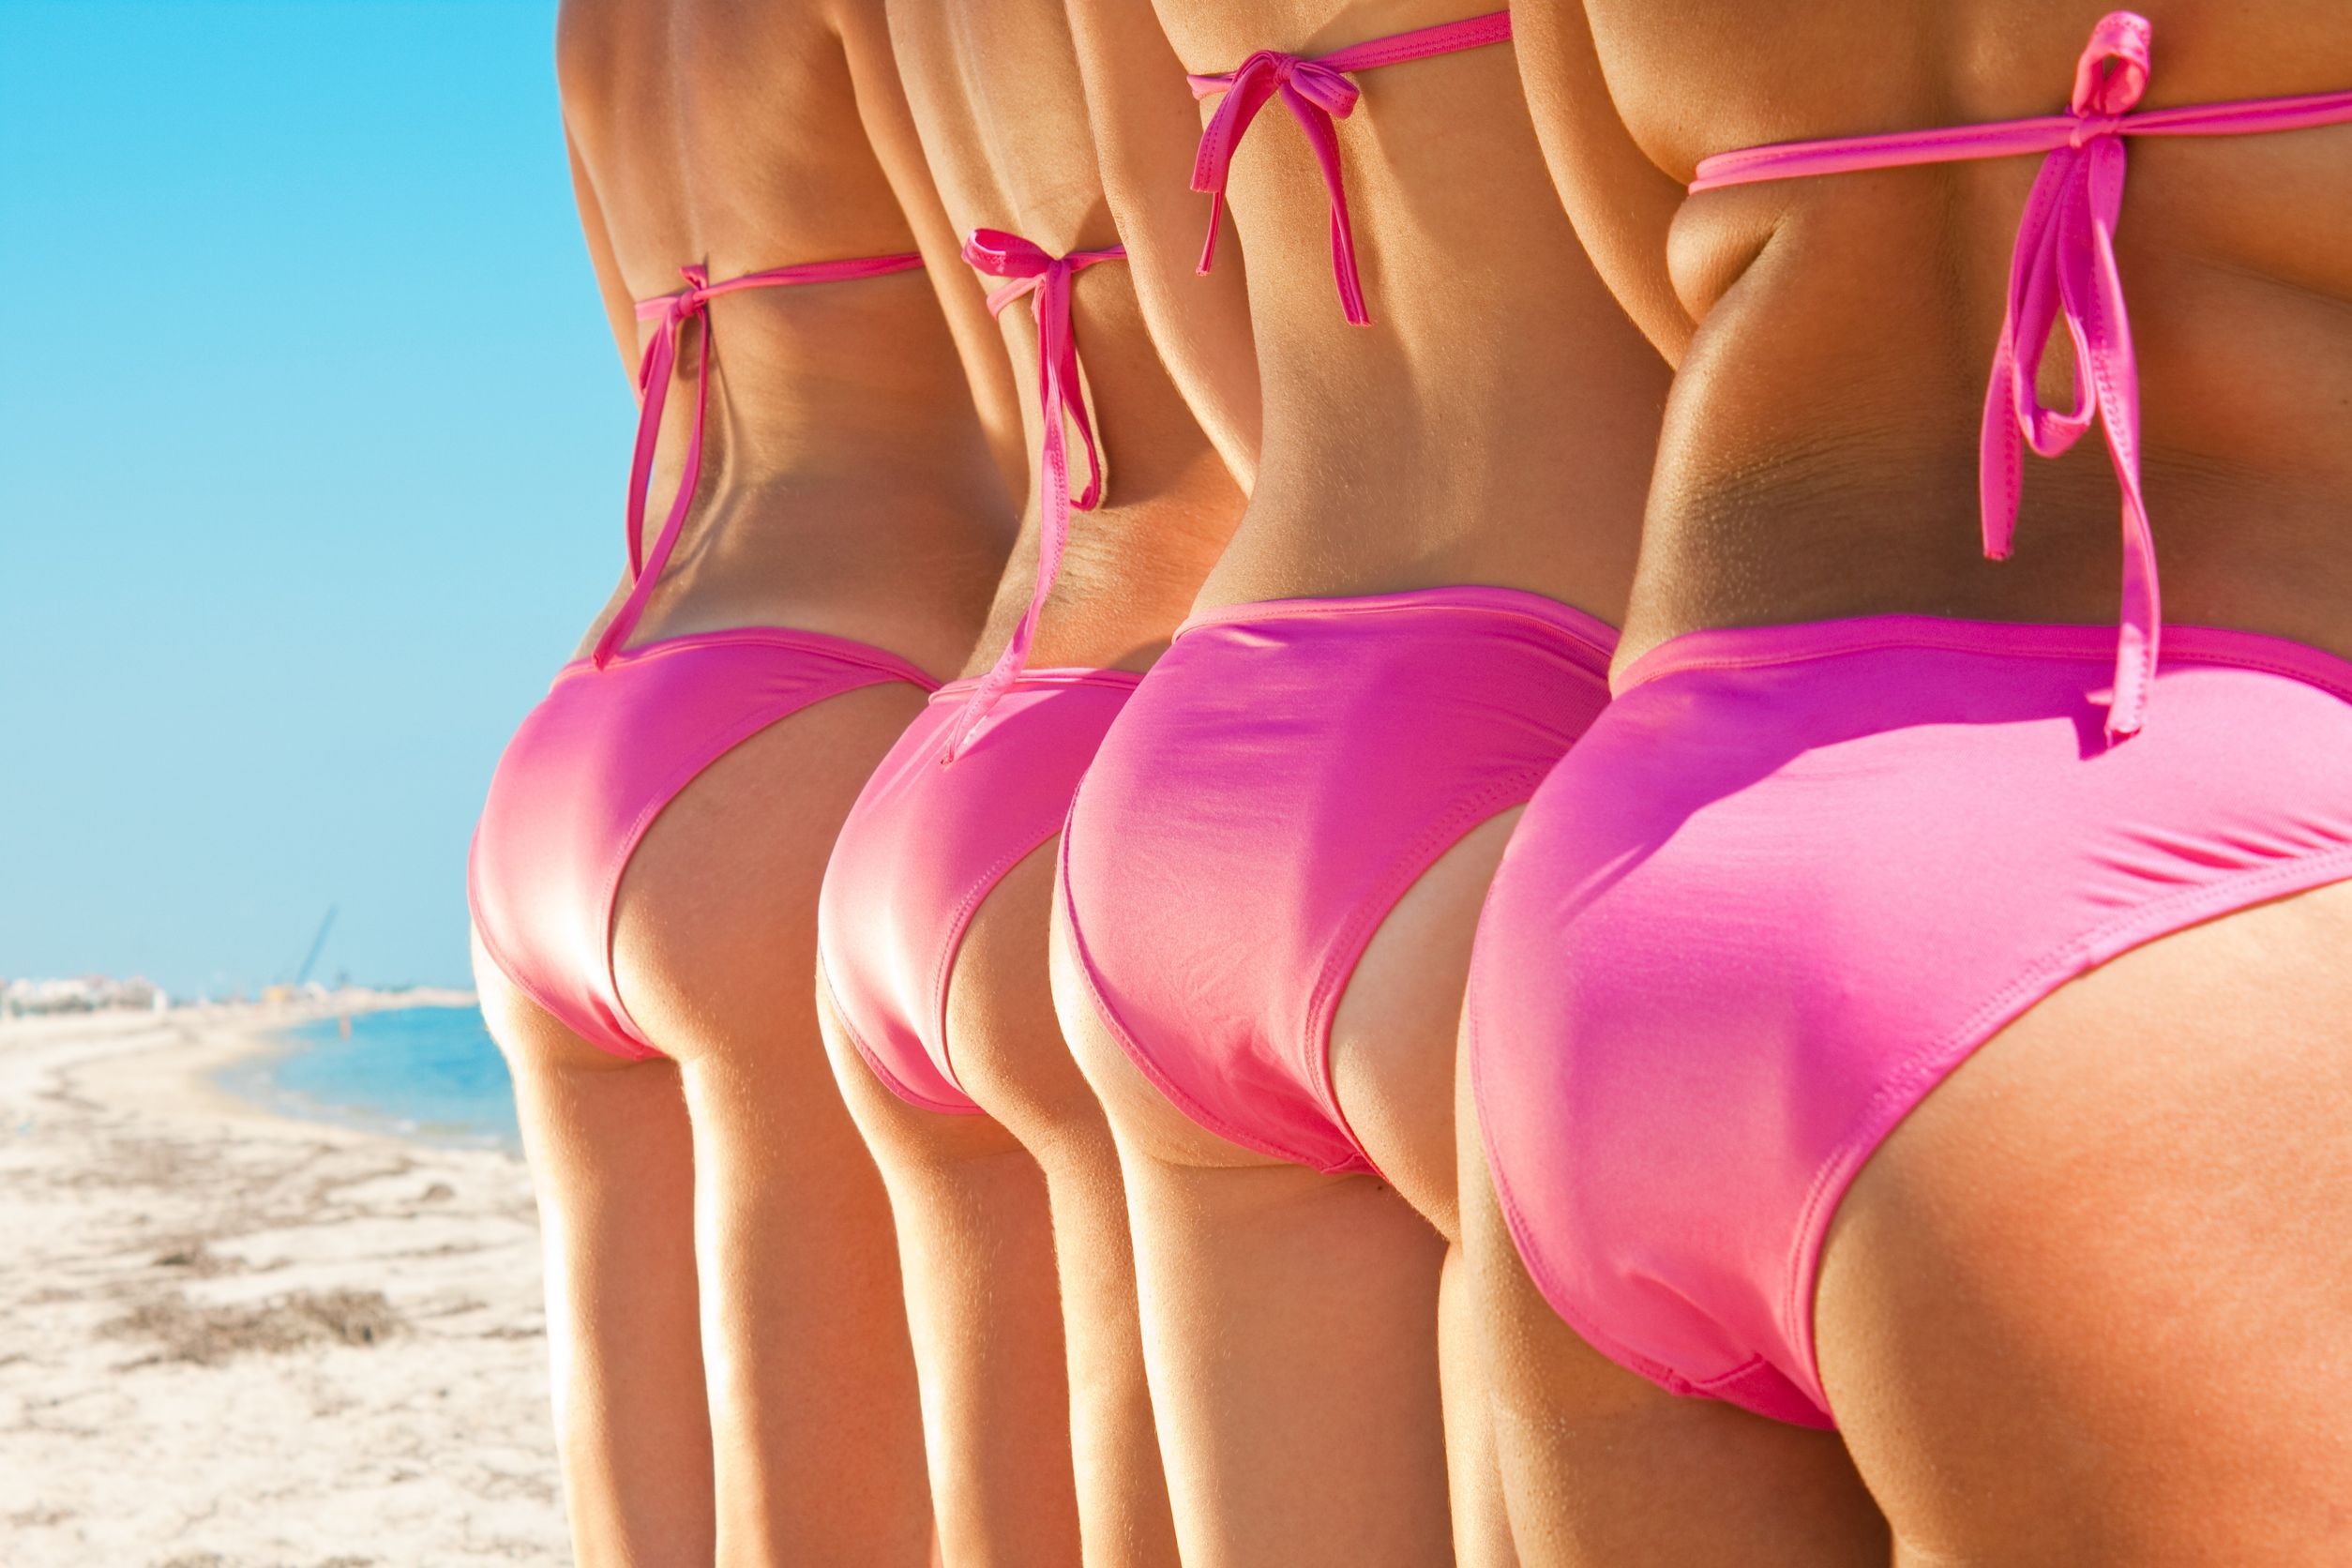 7075683 - side view of young girls bottom in pink bikini